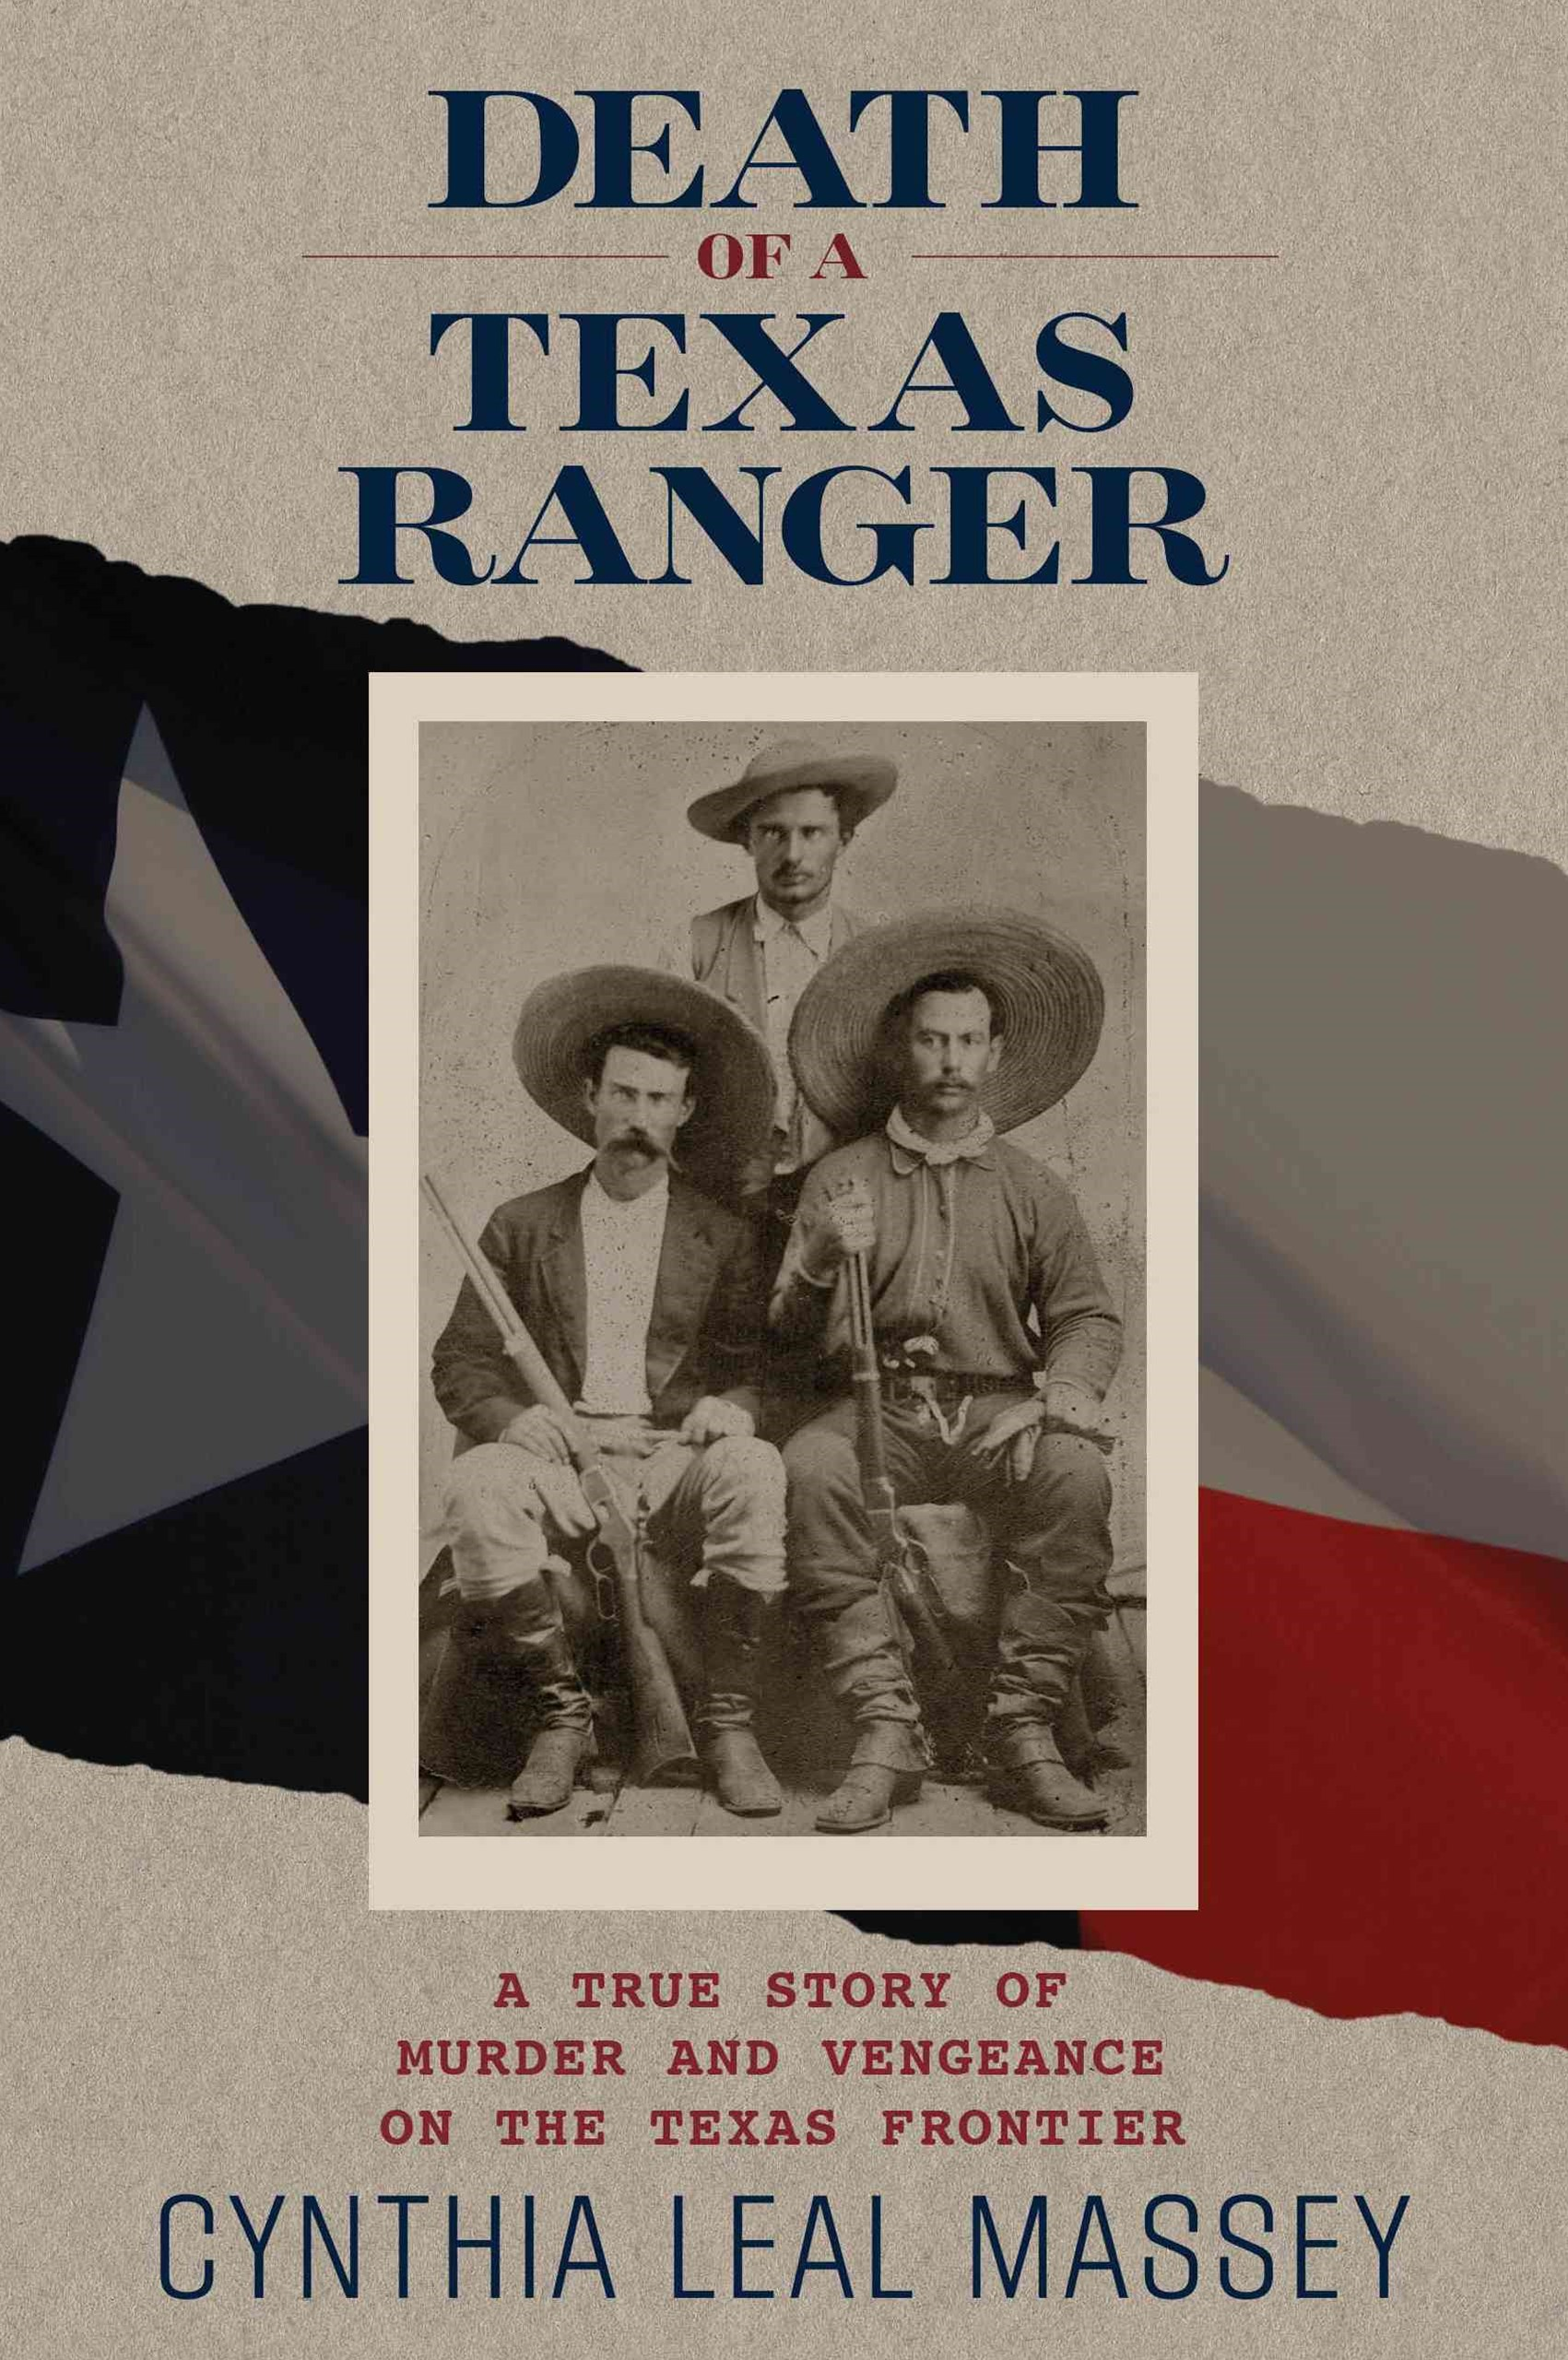 Death of a Texas Ranger